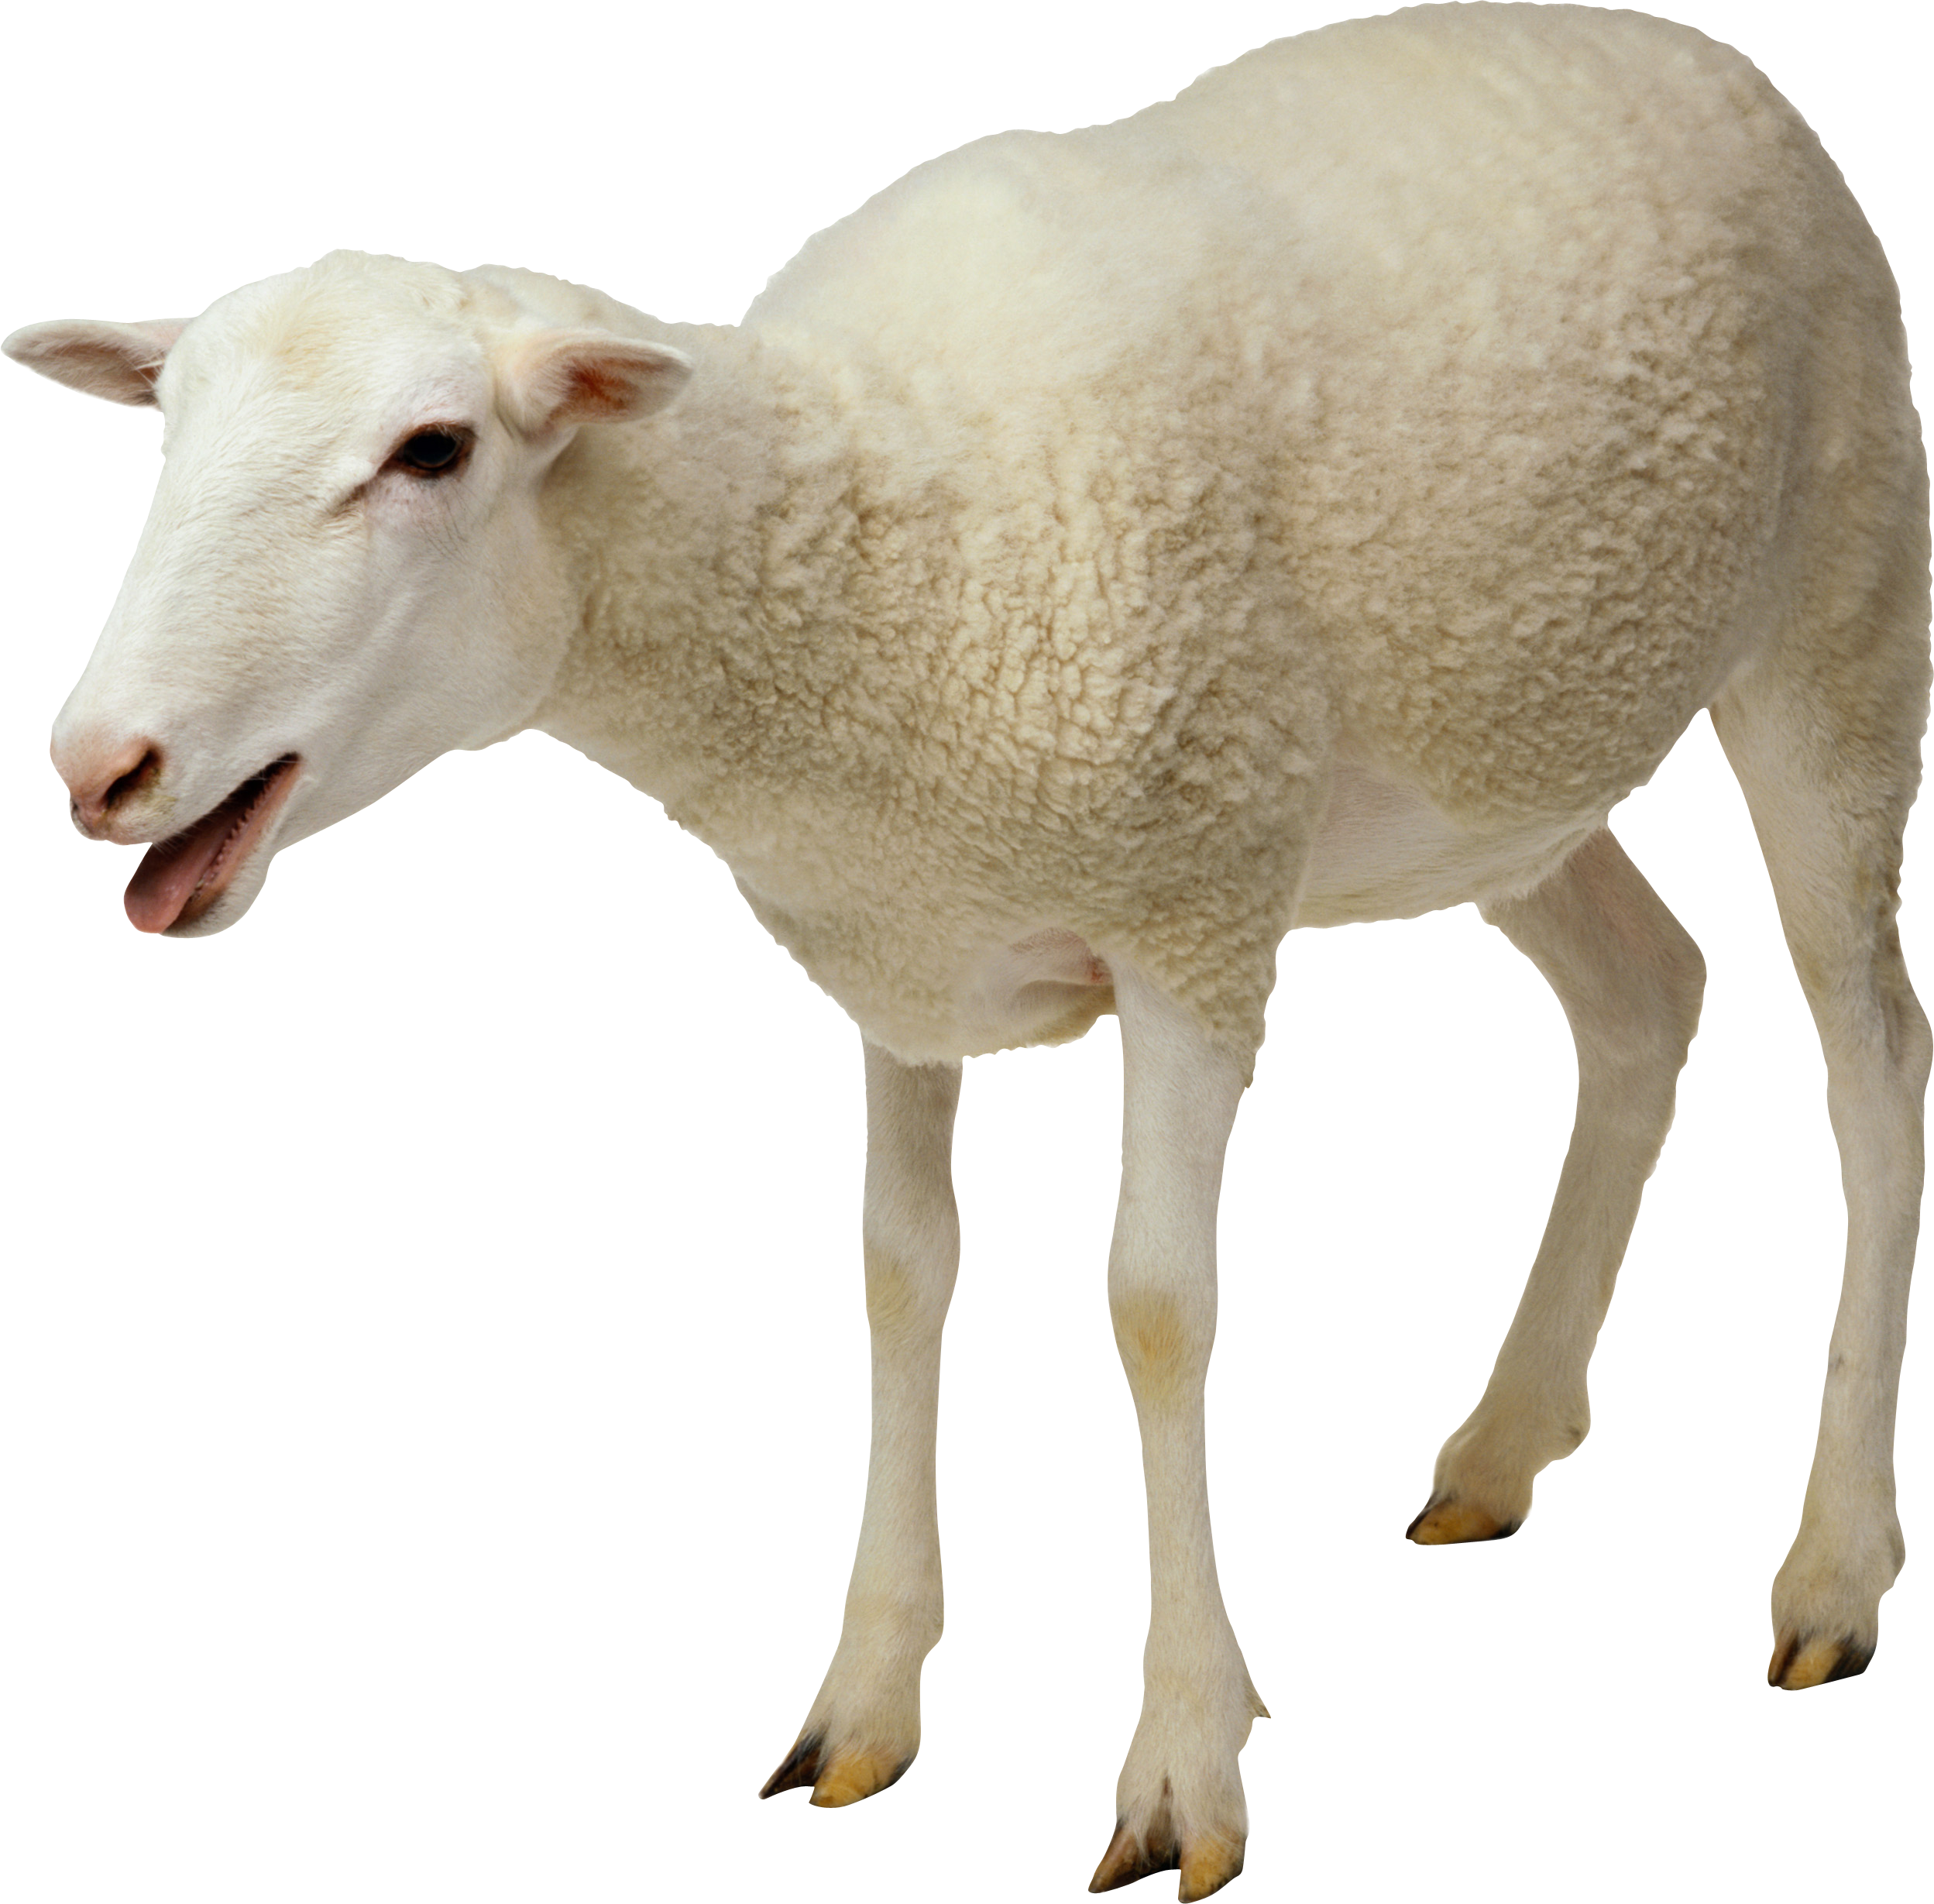 Ram animal png. Sheep image free download